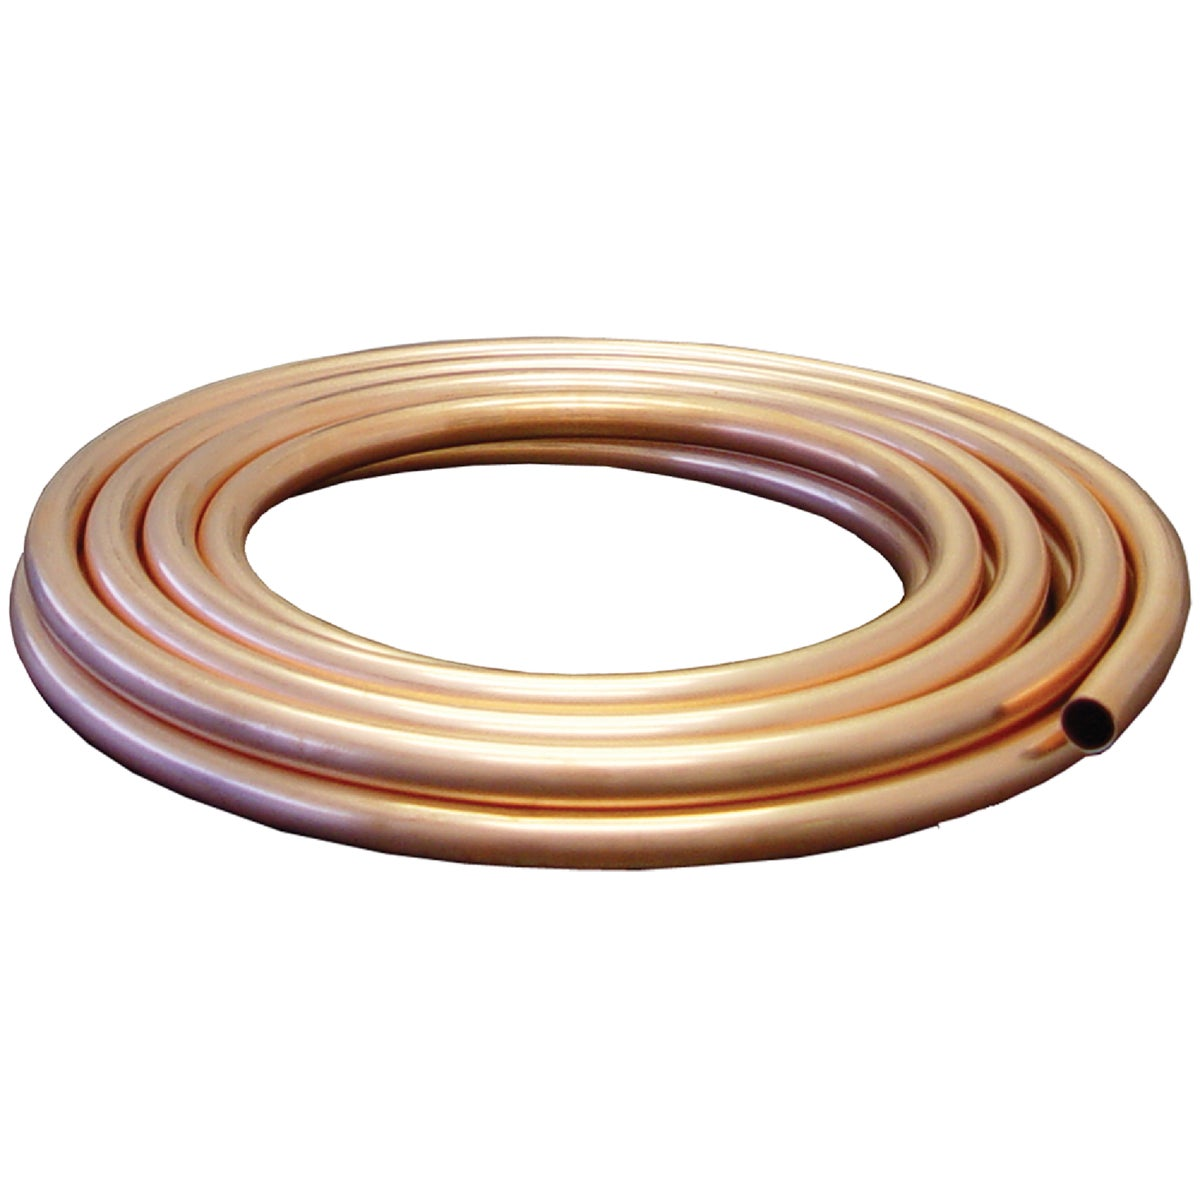 "3/8""ODX15'UG COPPER COIL - UT06015 by Mueller B K"